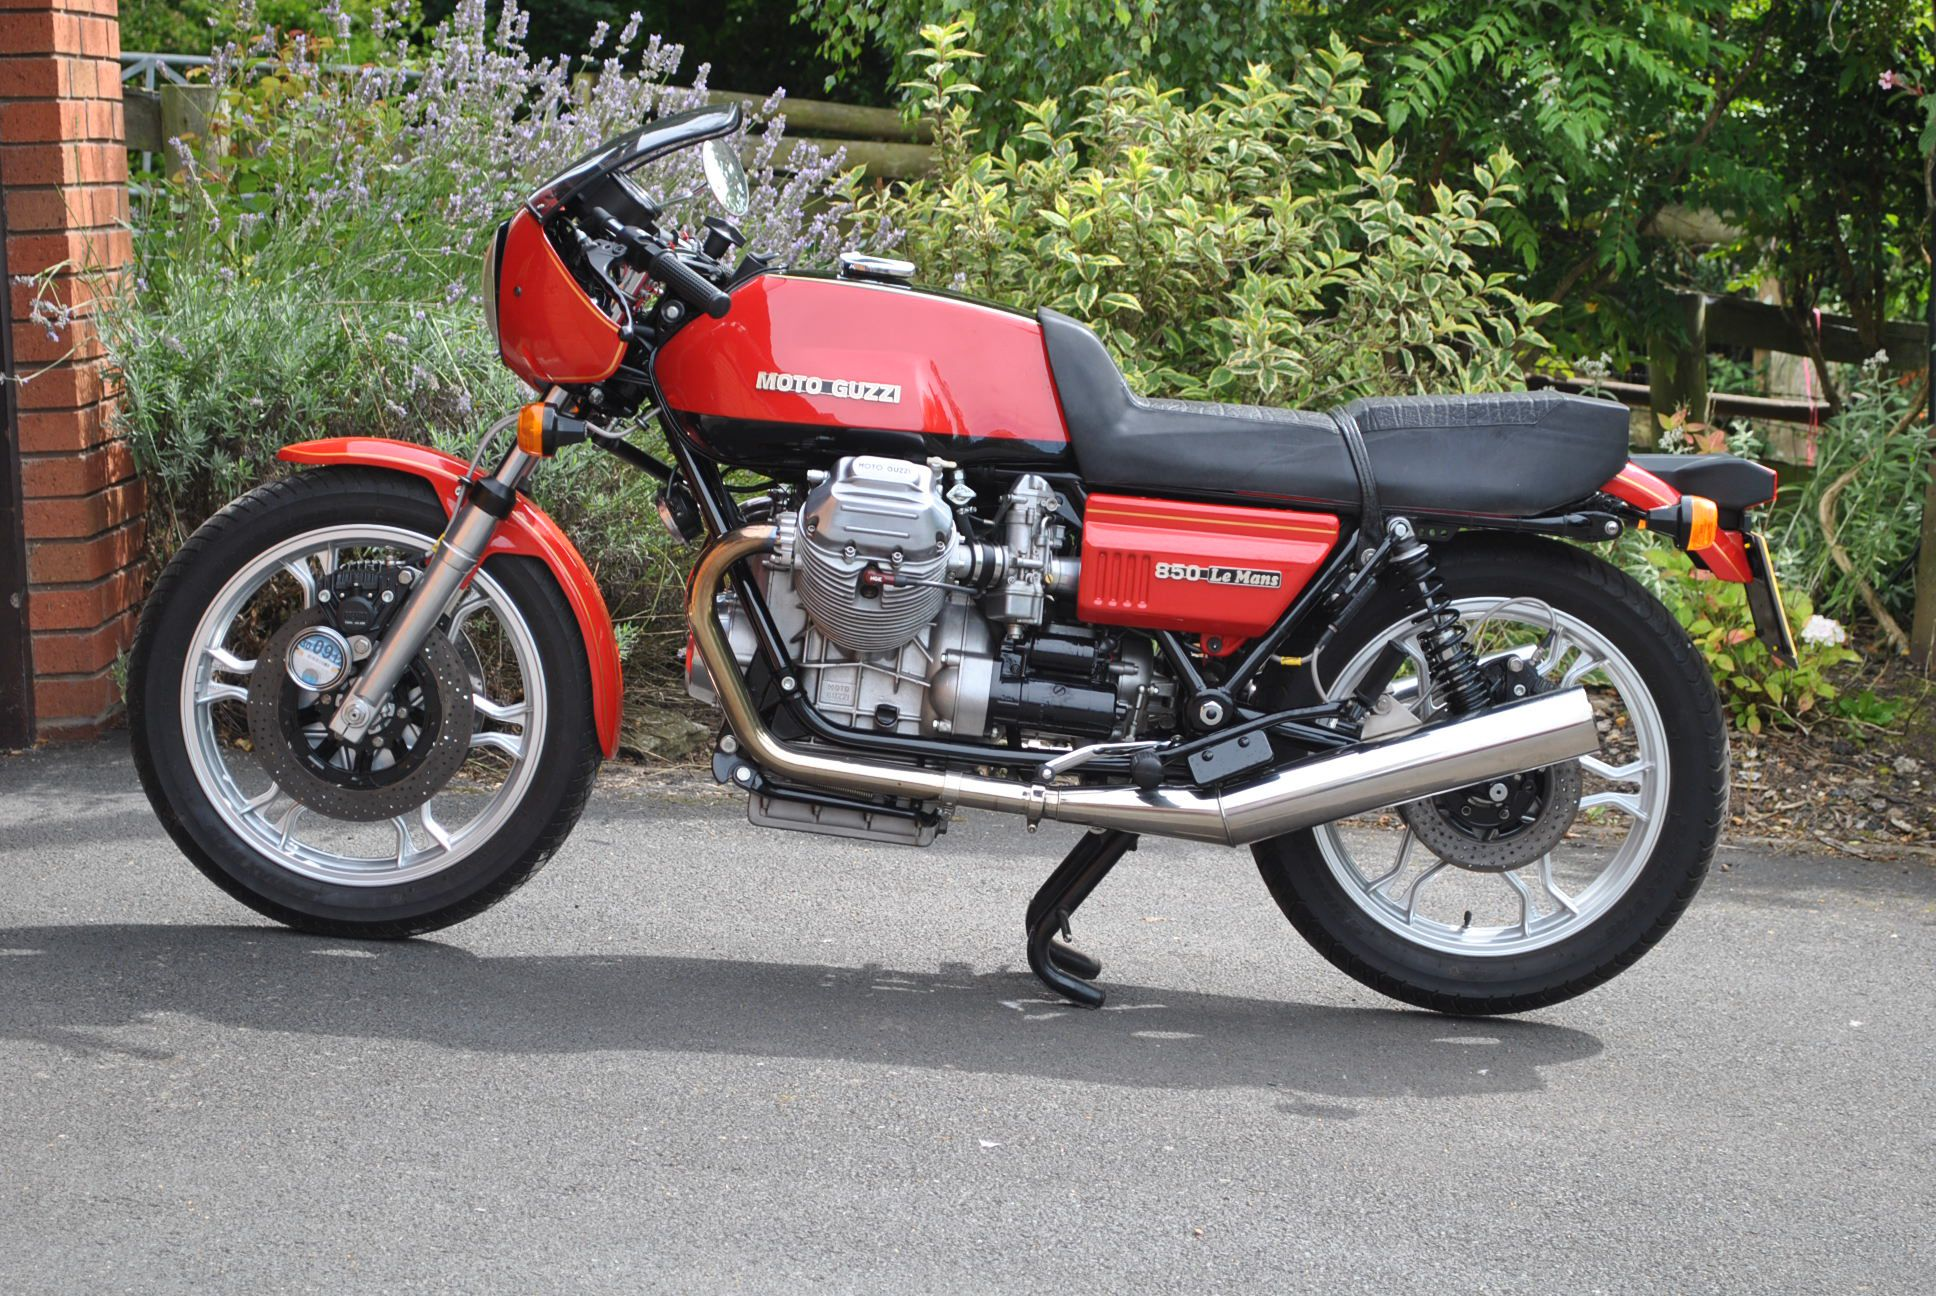 Pin By Lemans850 On Cars Motorcycles Moto Guzzi Cafe Racer Classic Motorcycles Moto Guzzi